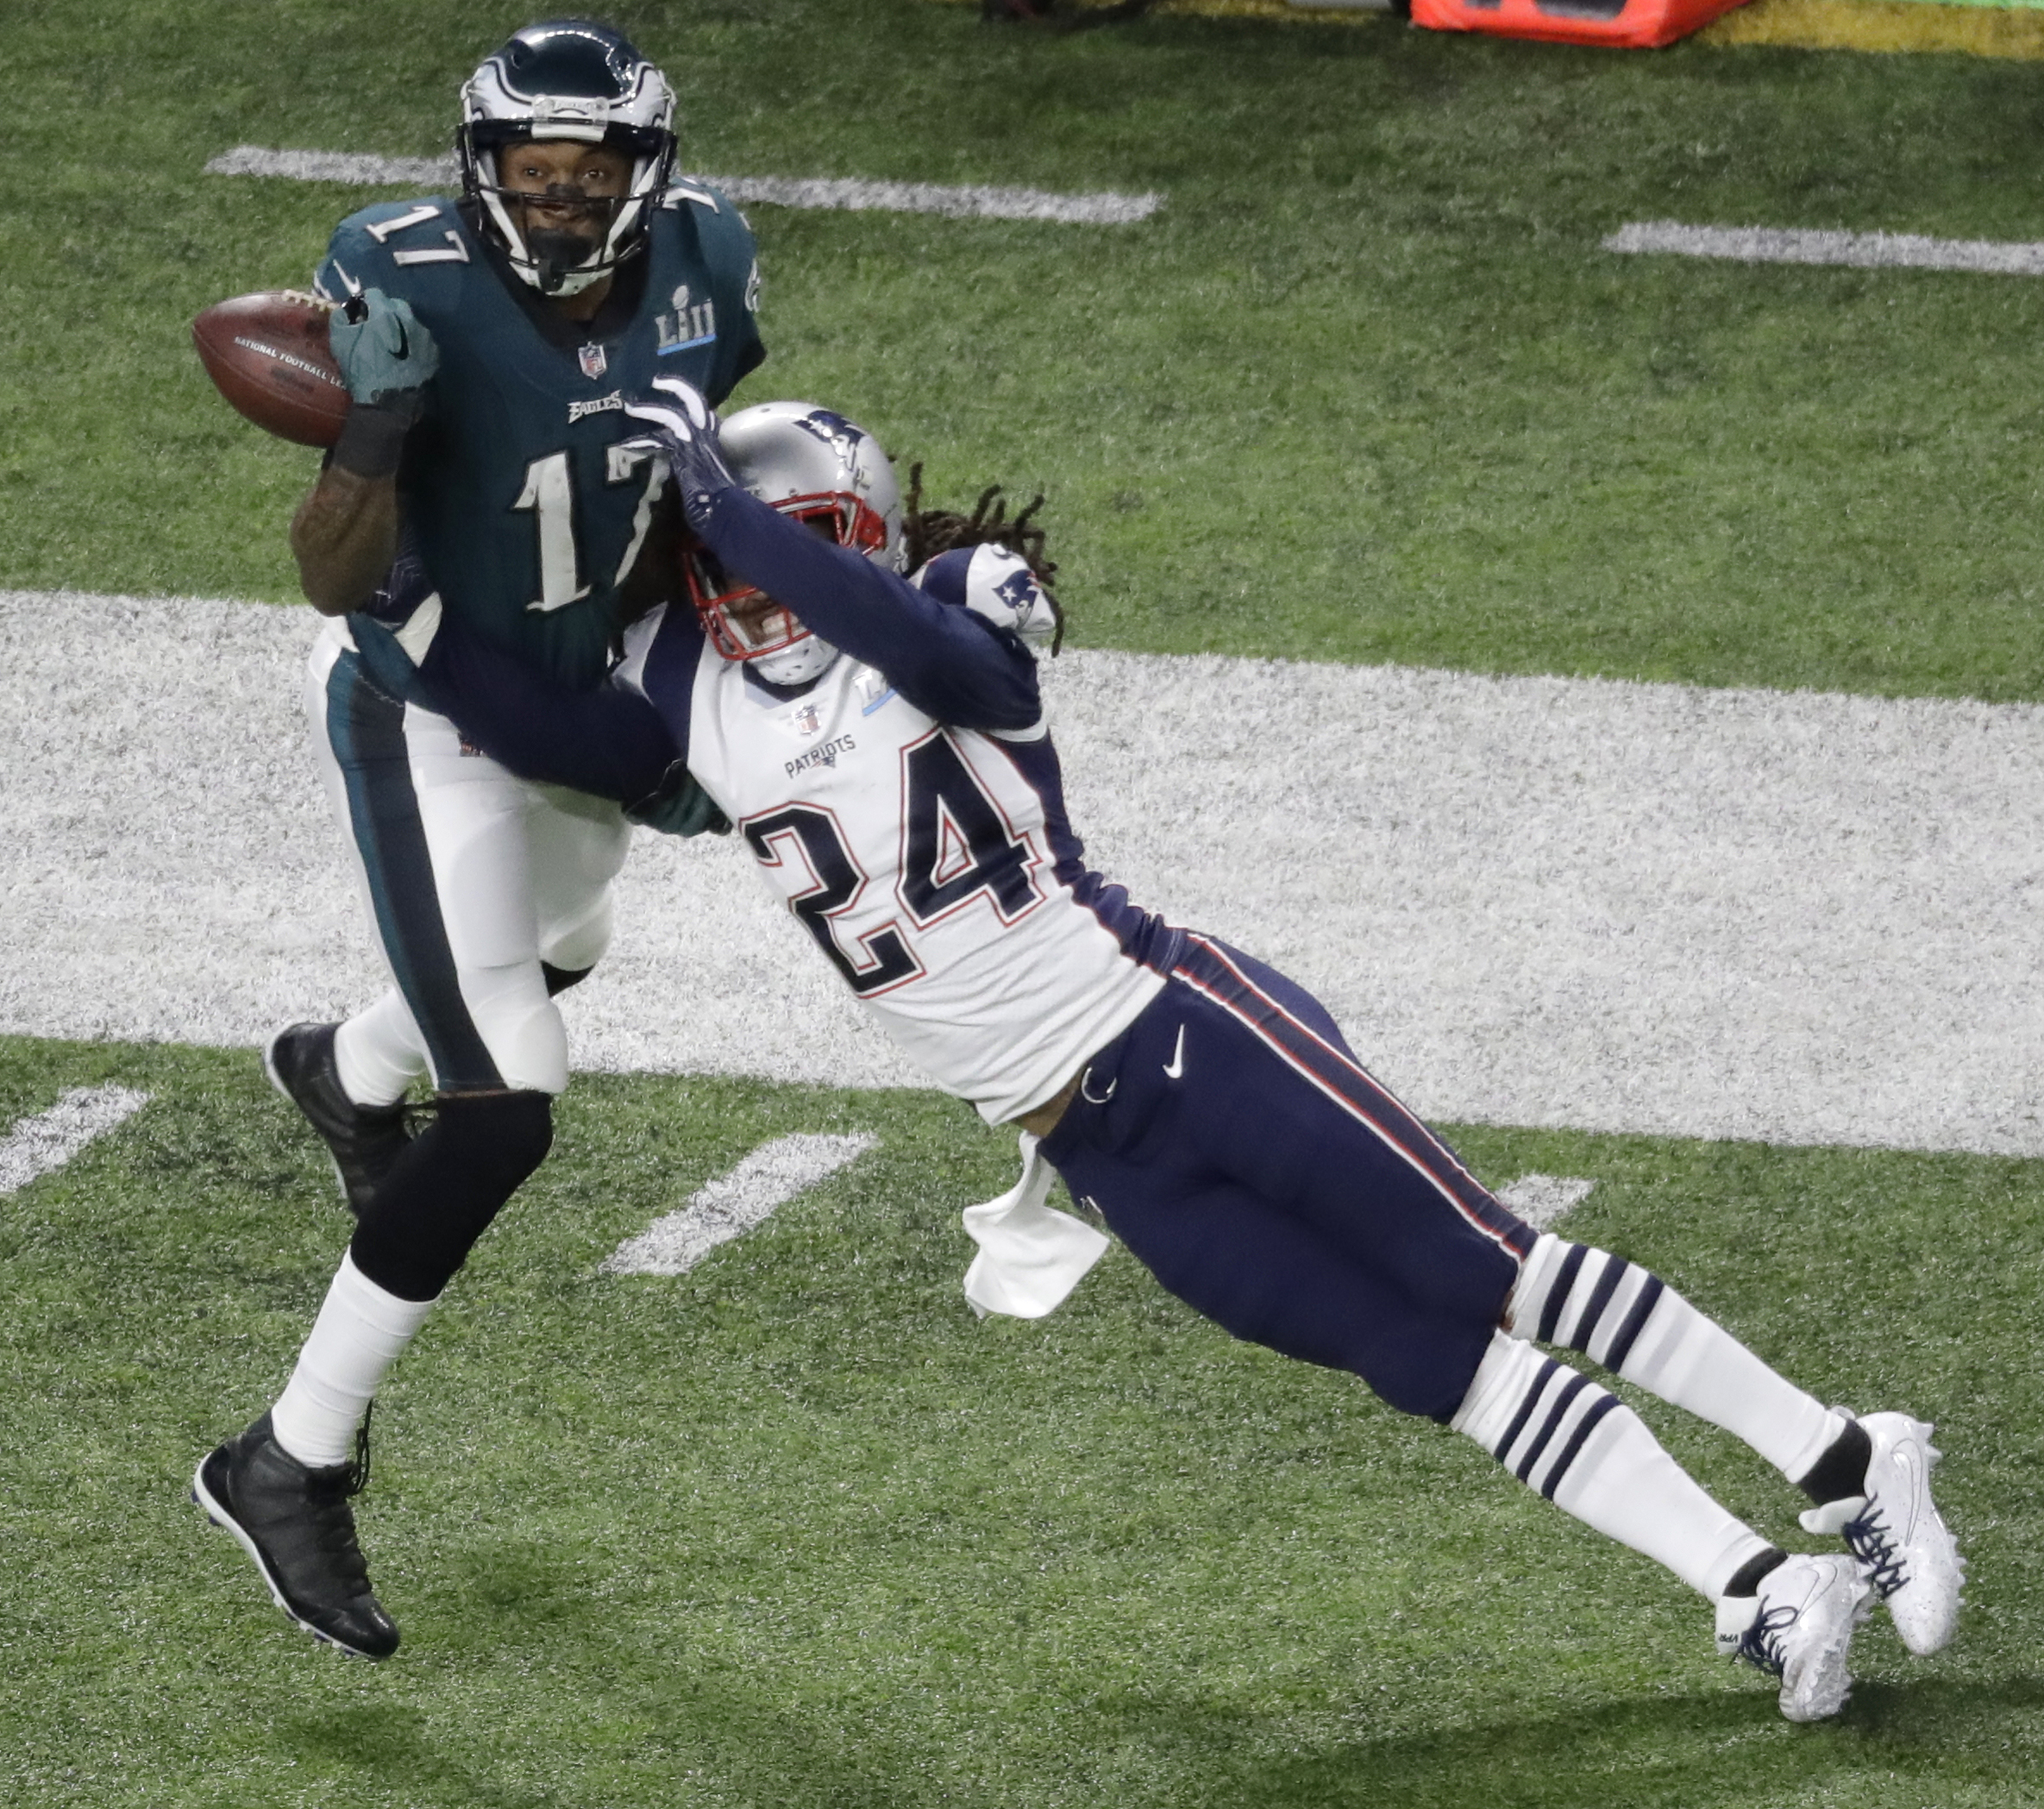 <div class='meta'><div class='origin-logo' data-origin='AP'></div><span class='caption-text' data-credit='AP Photo/Eric Gay'>New England Patriots cornerback Stephon Gilmore (24) breaks up a pass intended for Philadelphia Eagles wide receiver Alshon Jeffery.</span></div>